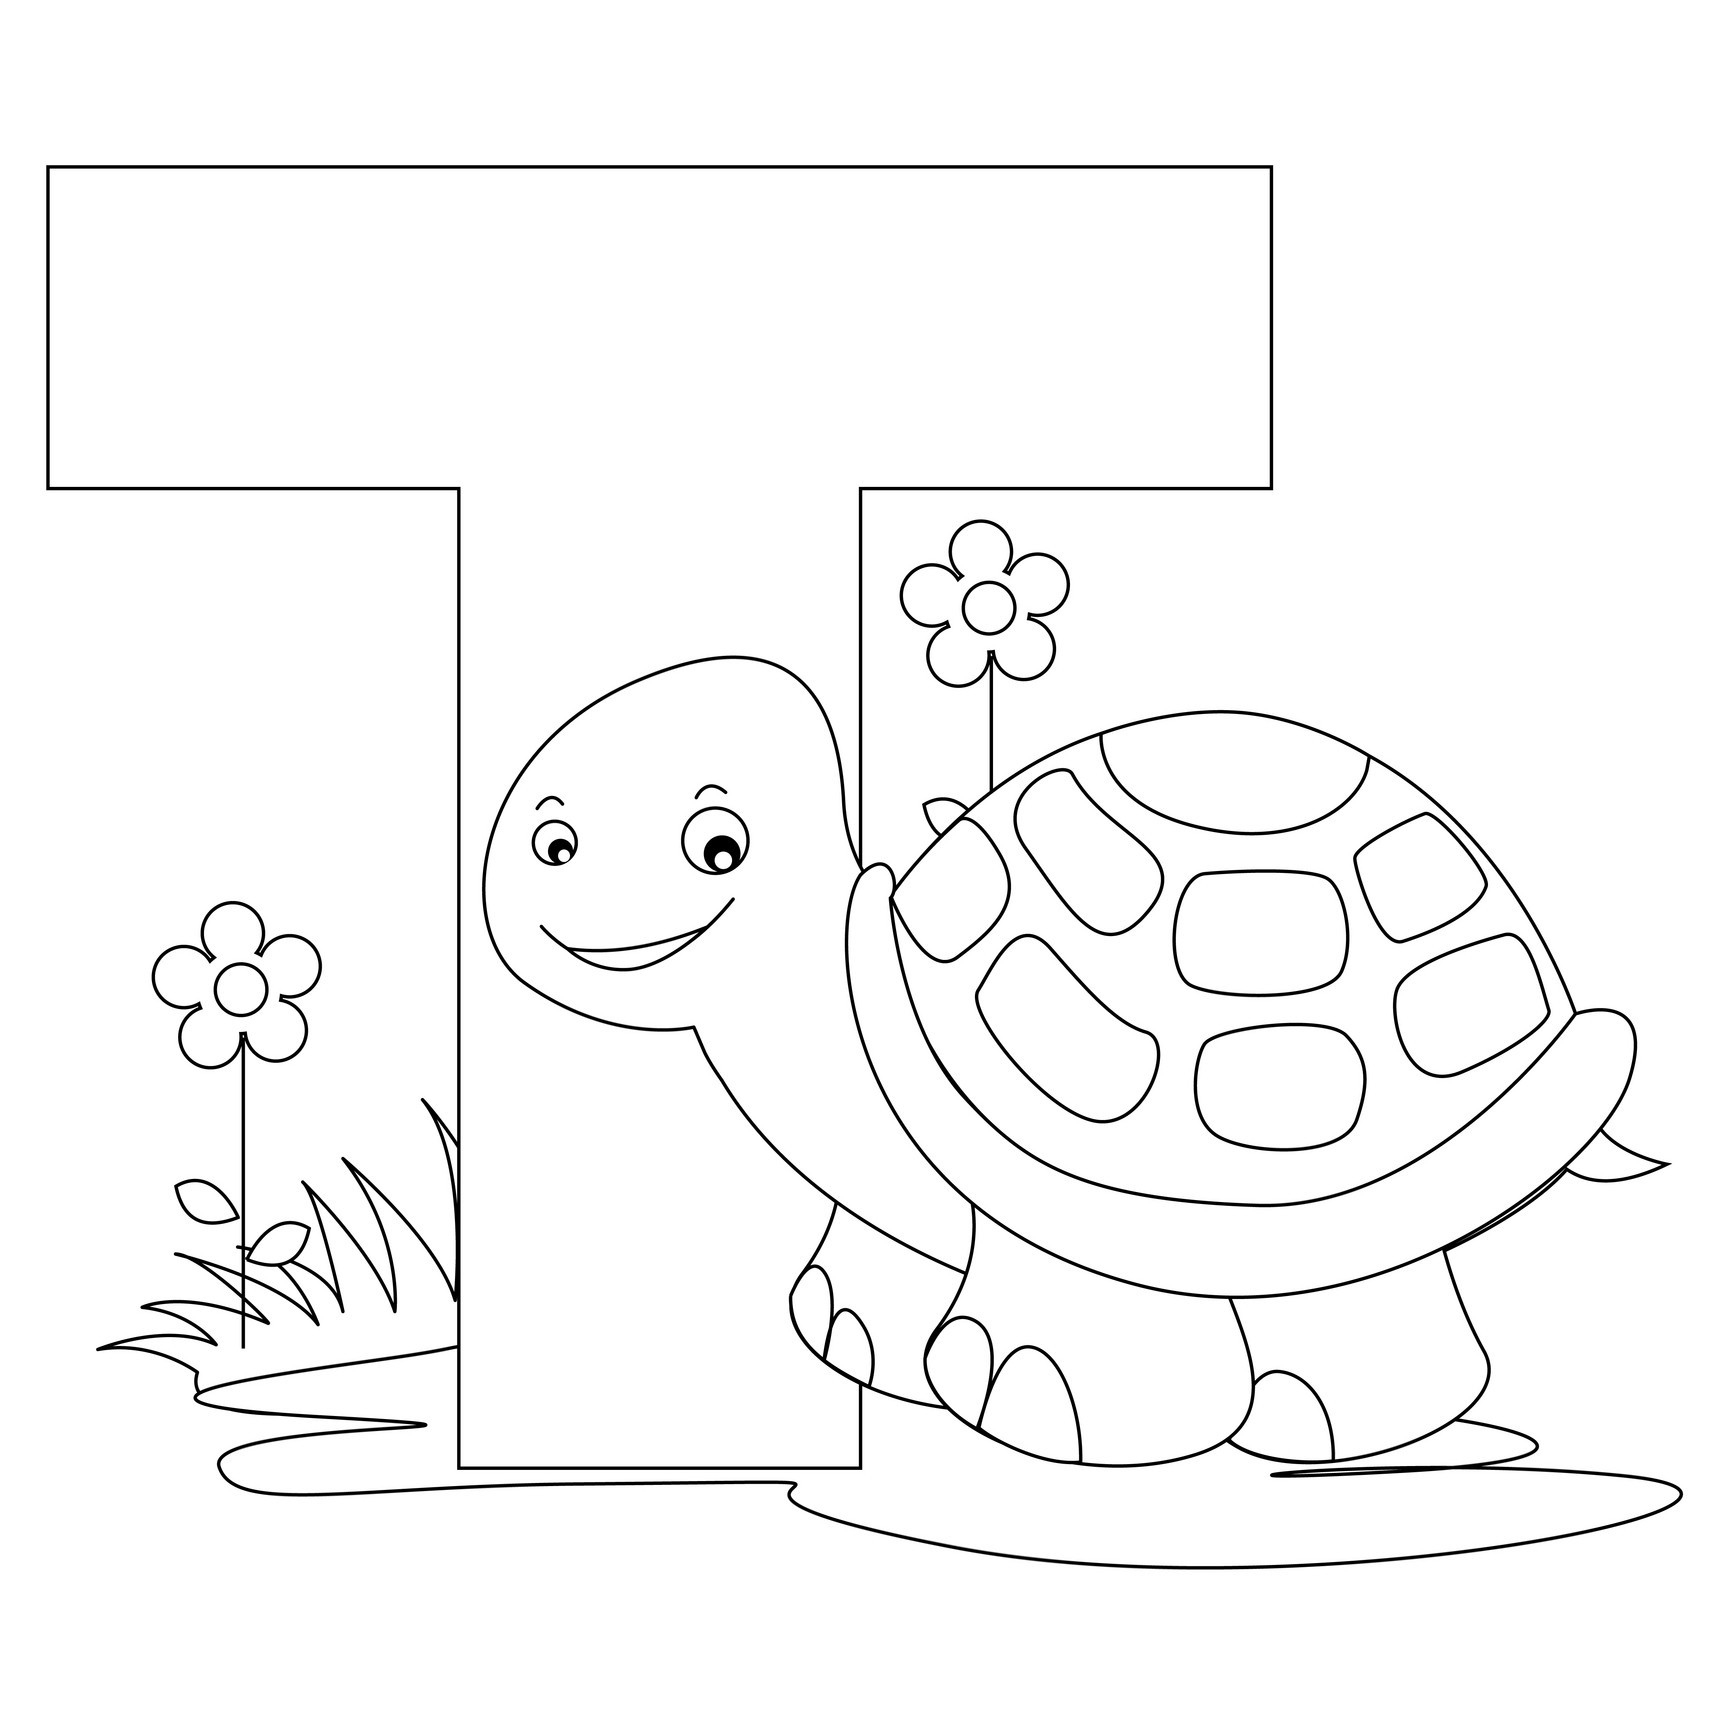 abc letters to color free printable alphabet coloring pages for kids best abc to color letters